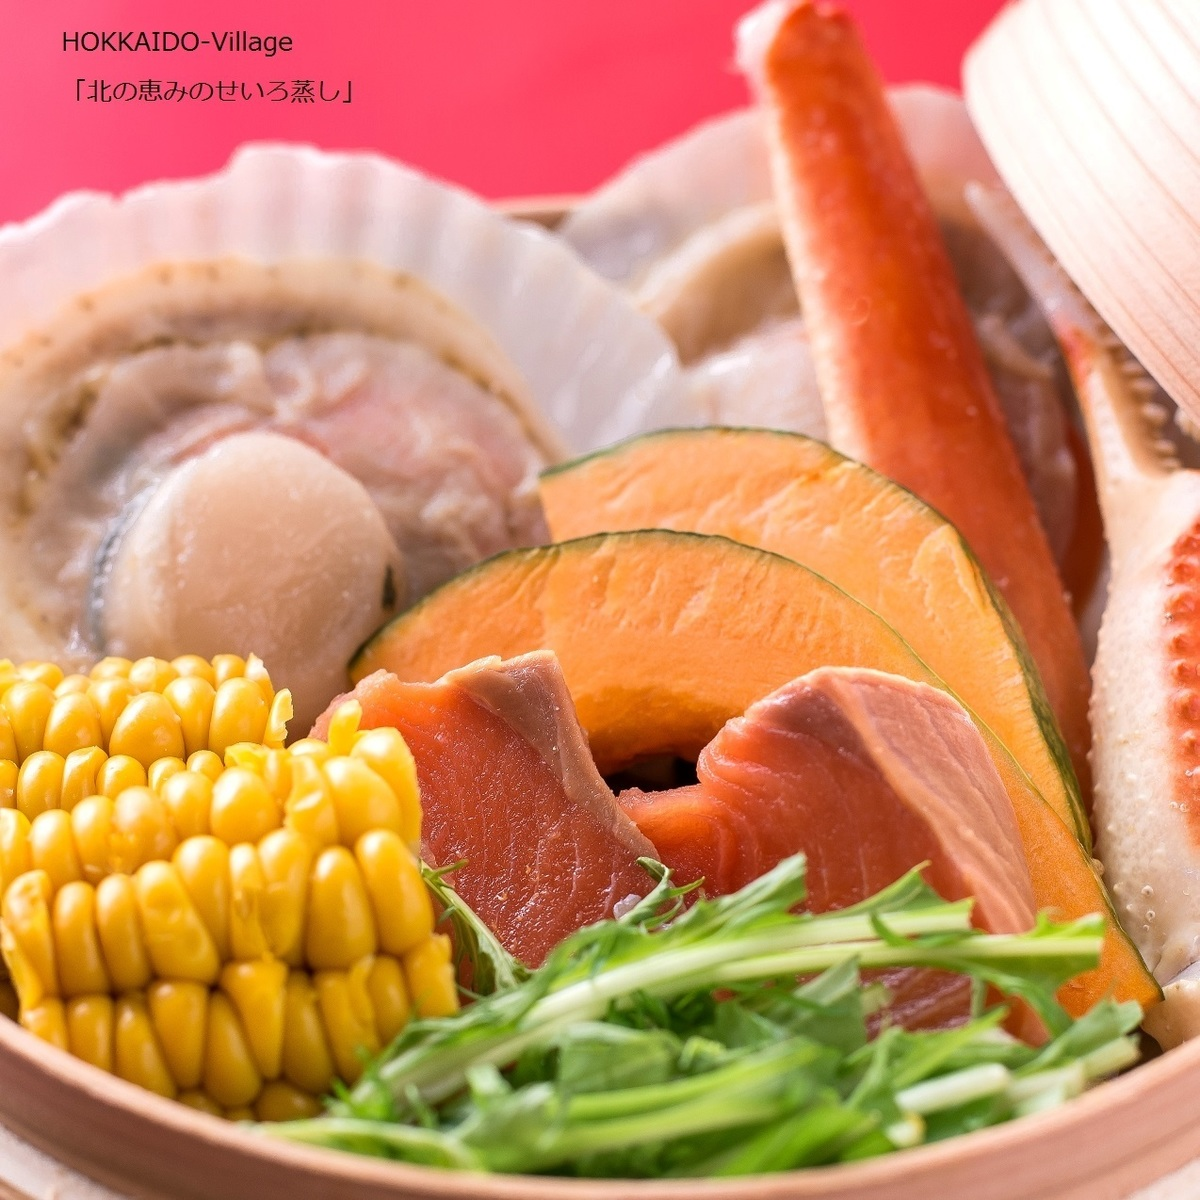 Steaming the blessings of the north blessing ~ Hokkaido steam food ~